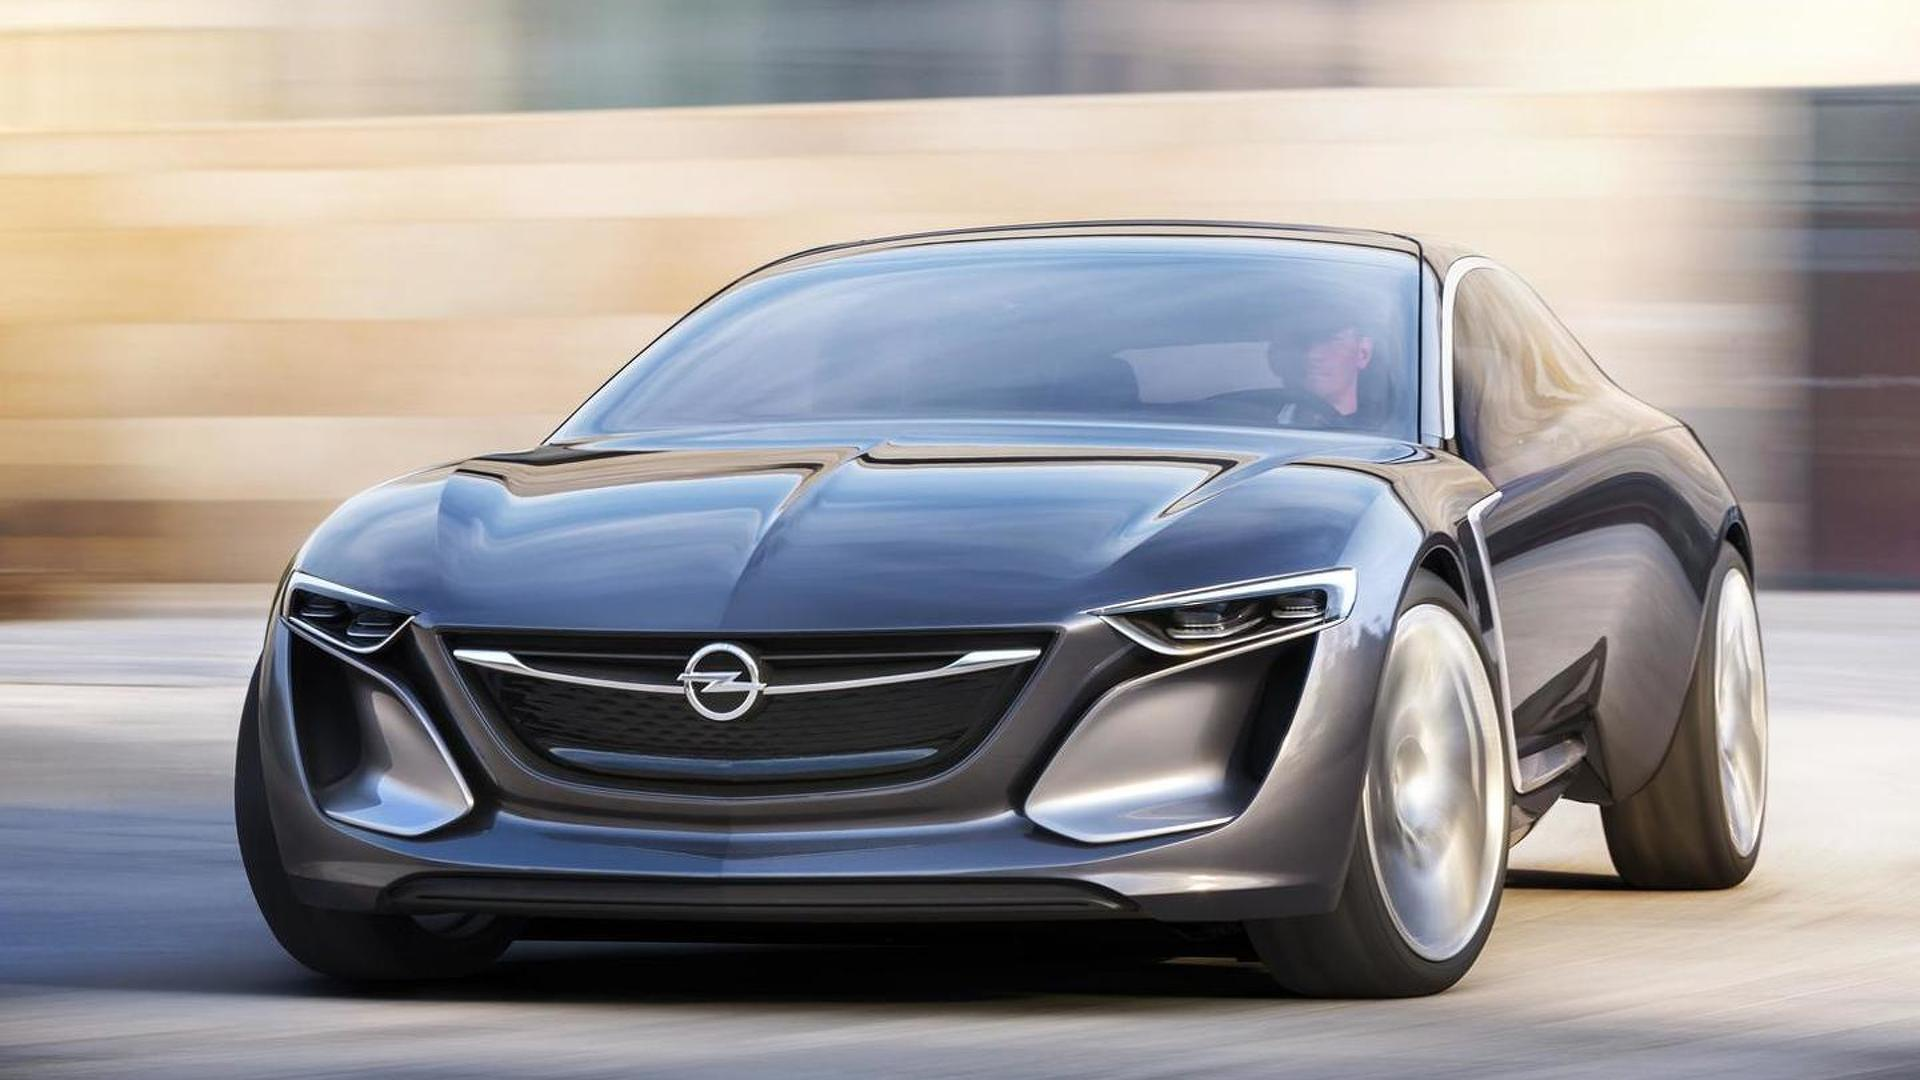 2017 Opel Monza Review Redesign And Price >> Opel Monza Based Large Suv Flagship Model Due In 2017 Report